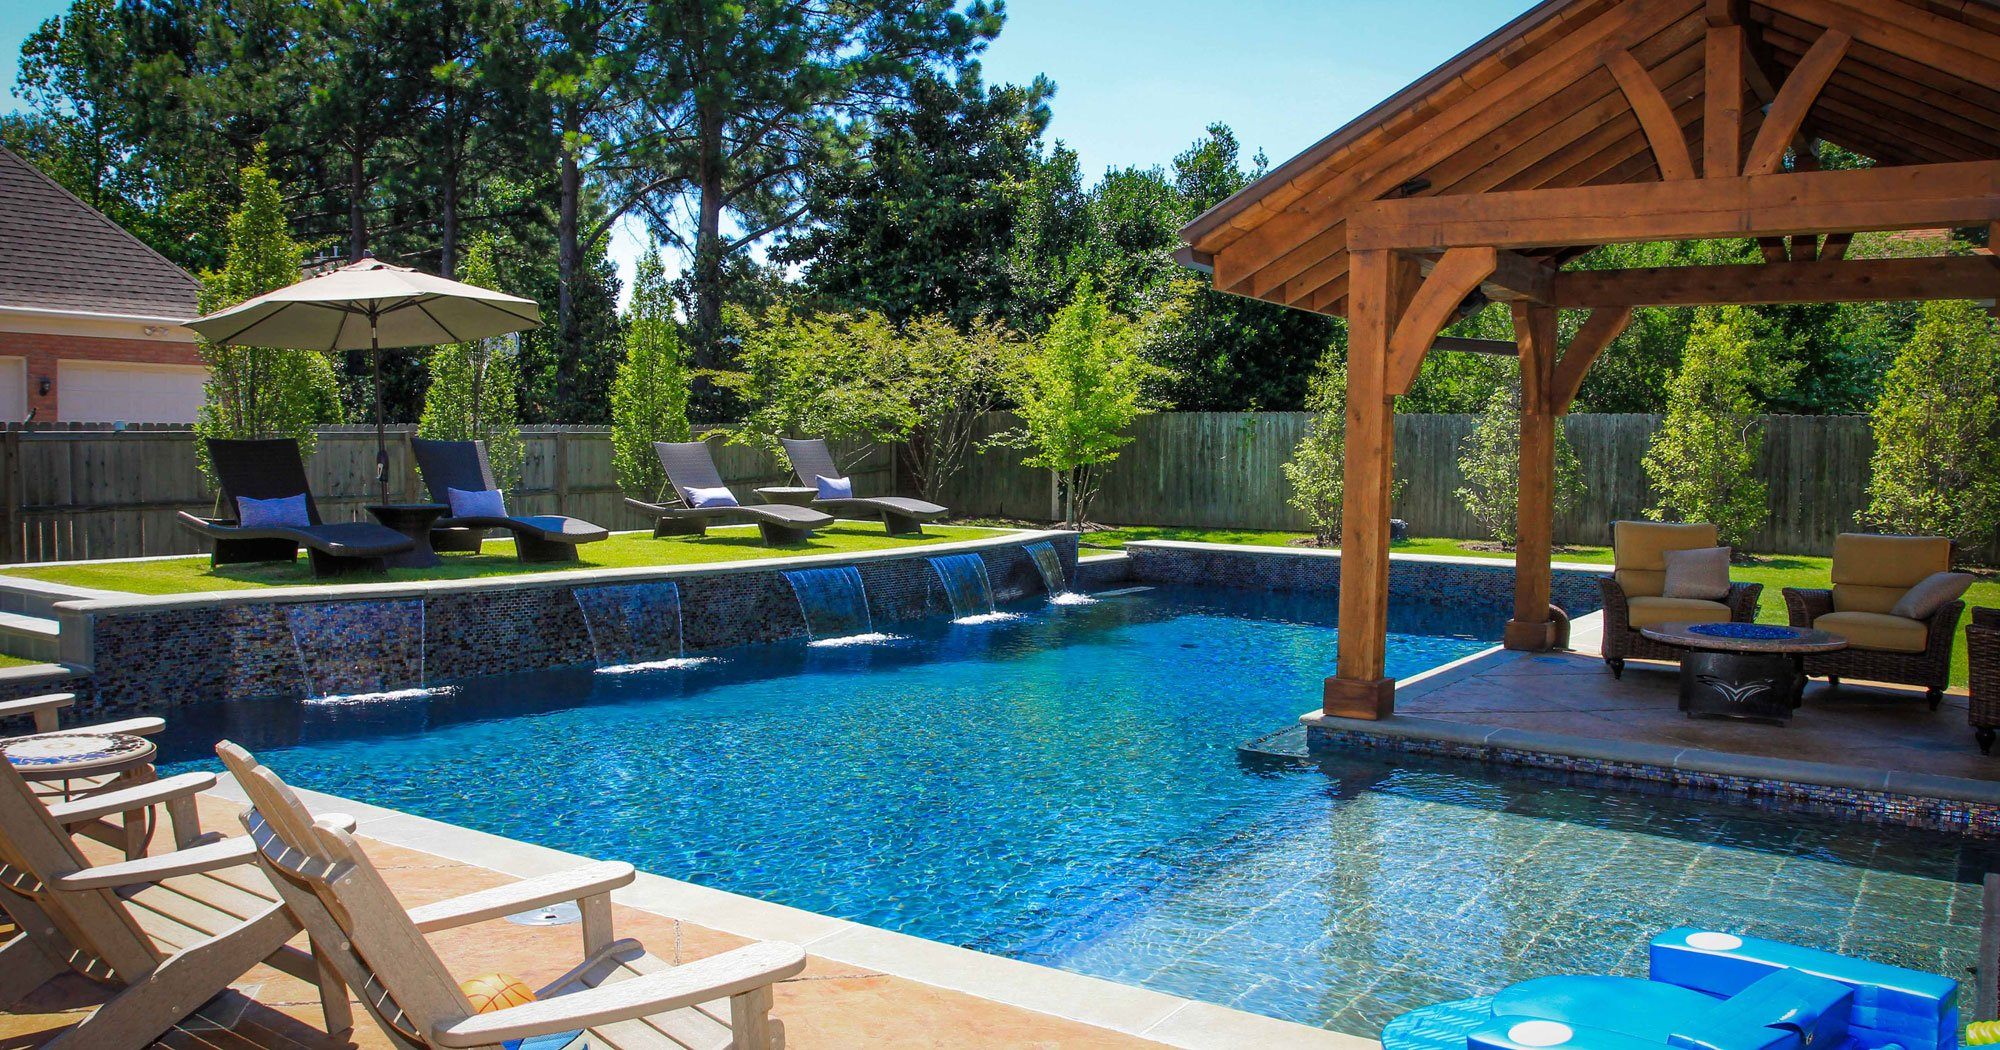 Awesome Backyard Pools backyard pool landscaping ideas